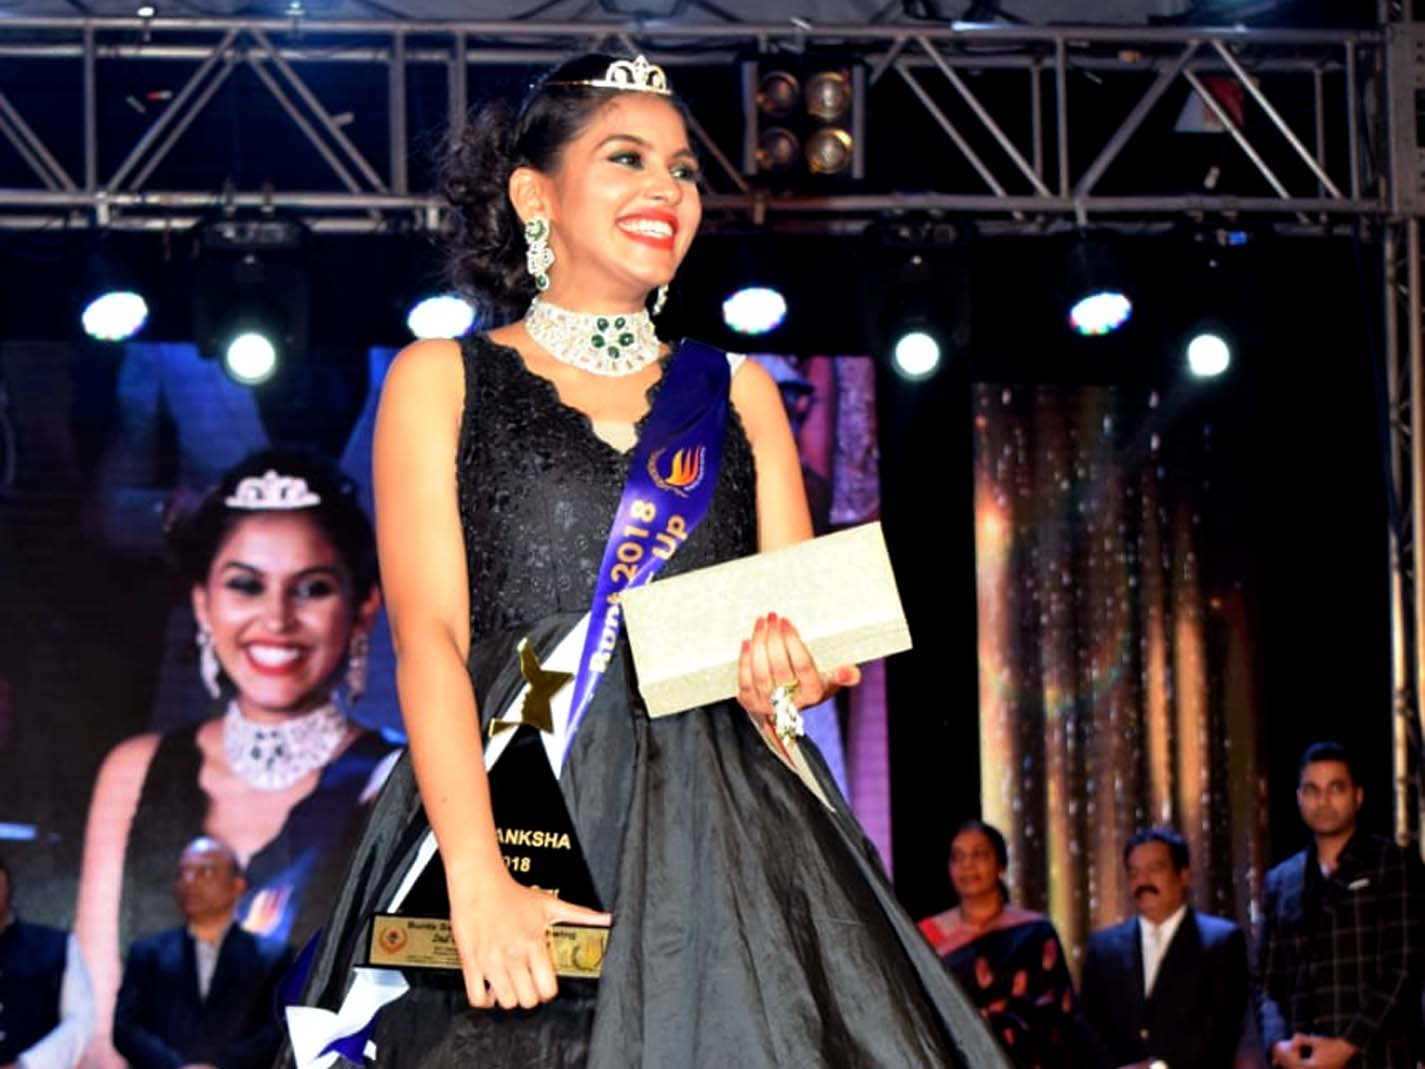 Our MBA Student Ranked 2nd at Beauty Pageant Aakanksha 2018